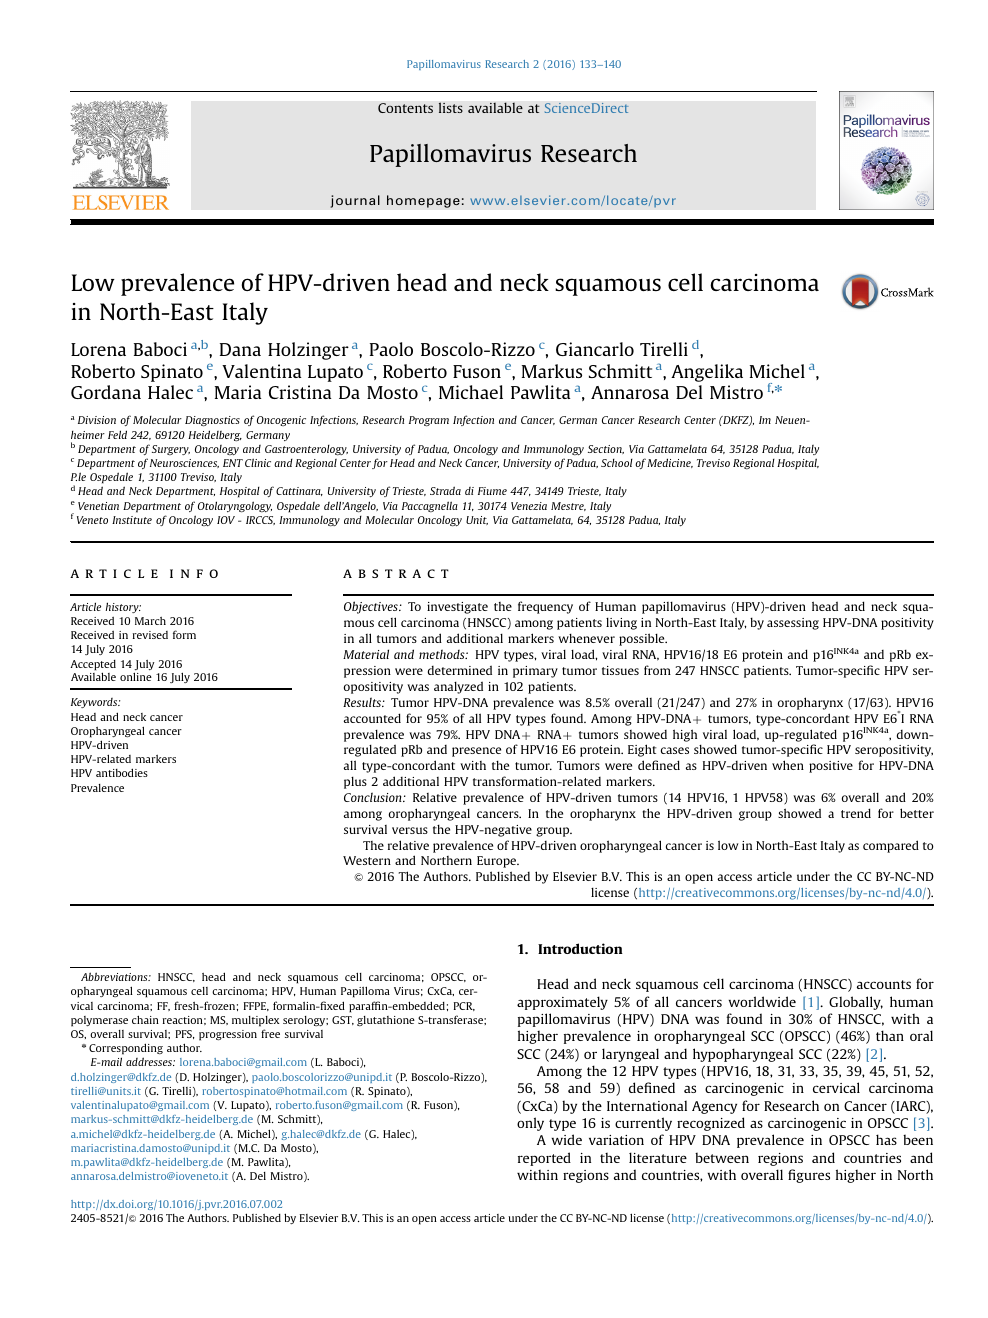 Low prevalence of HPV-driven head and neck squamous cell carcinoma in  North-East Italy – topic of research paper in Health sciences. Download  scholarly article PDF and read for free on CyberLeninka open